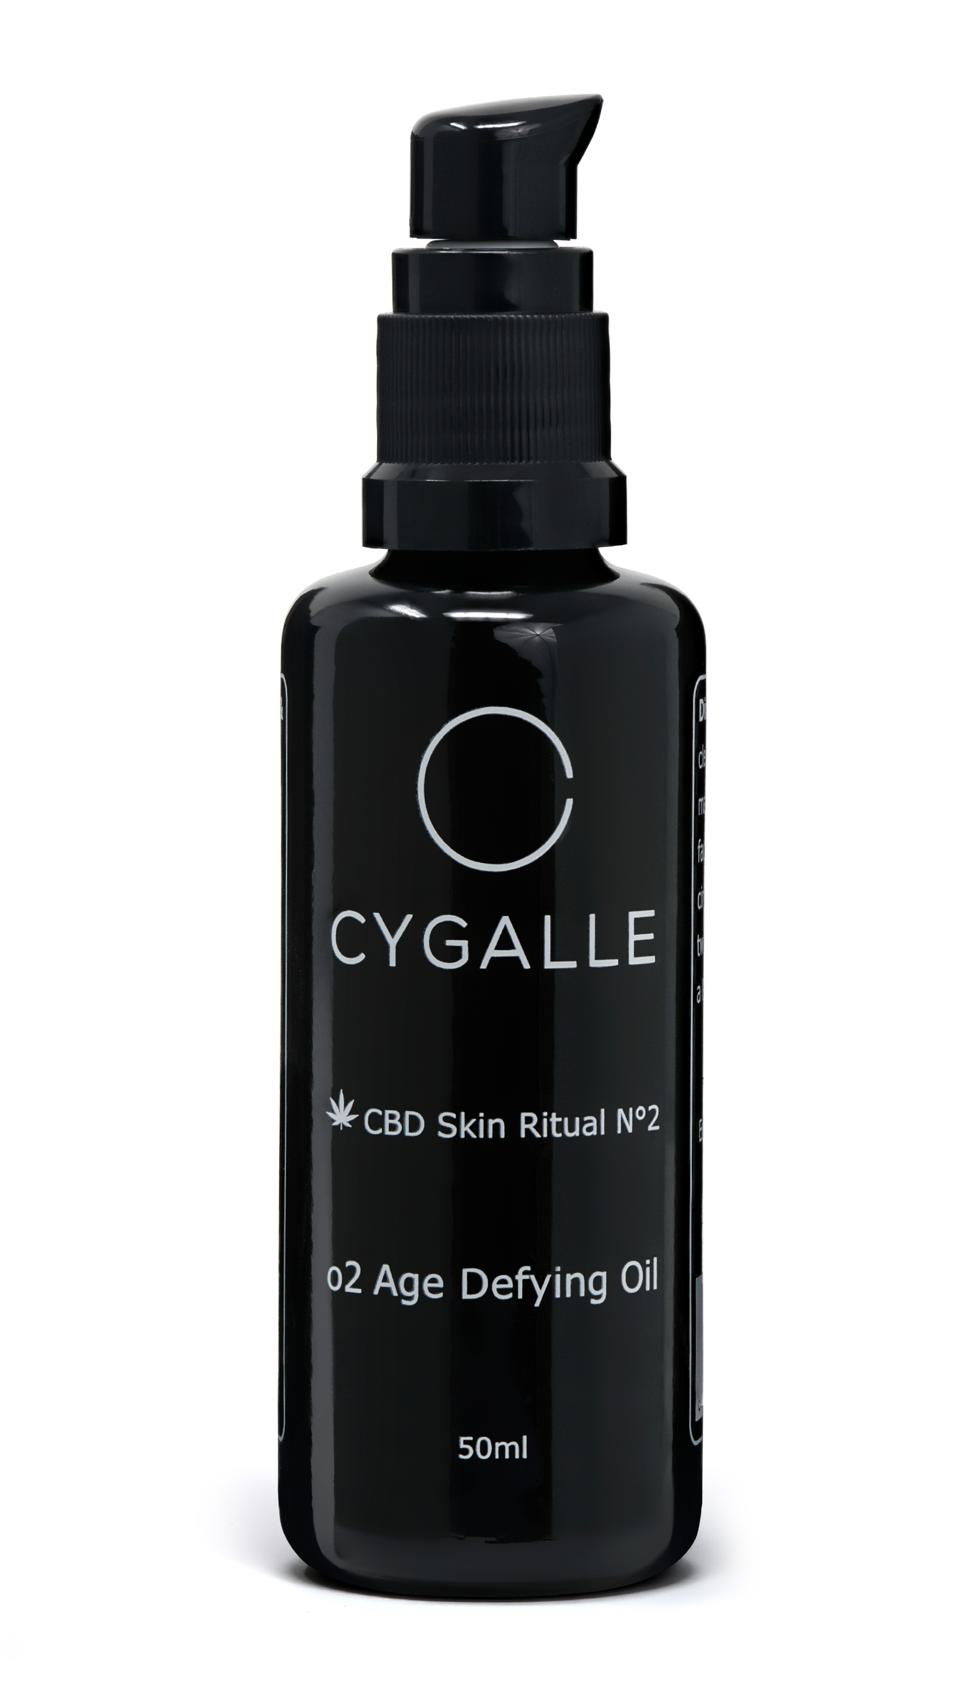 CYGALLE Age Defying Oil